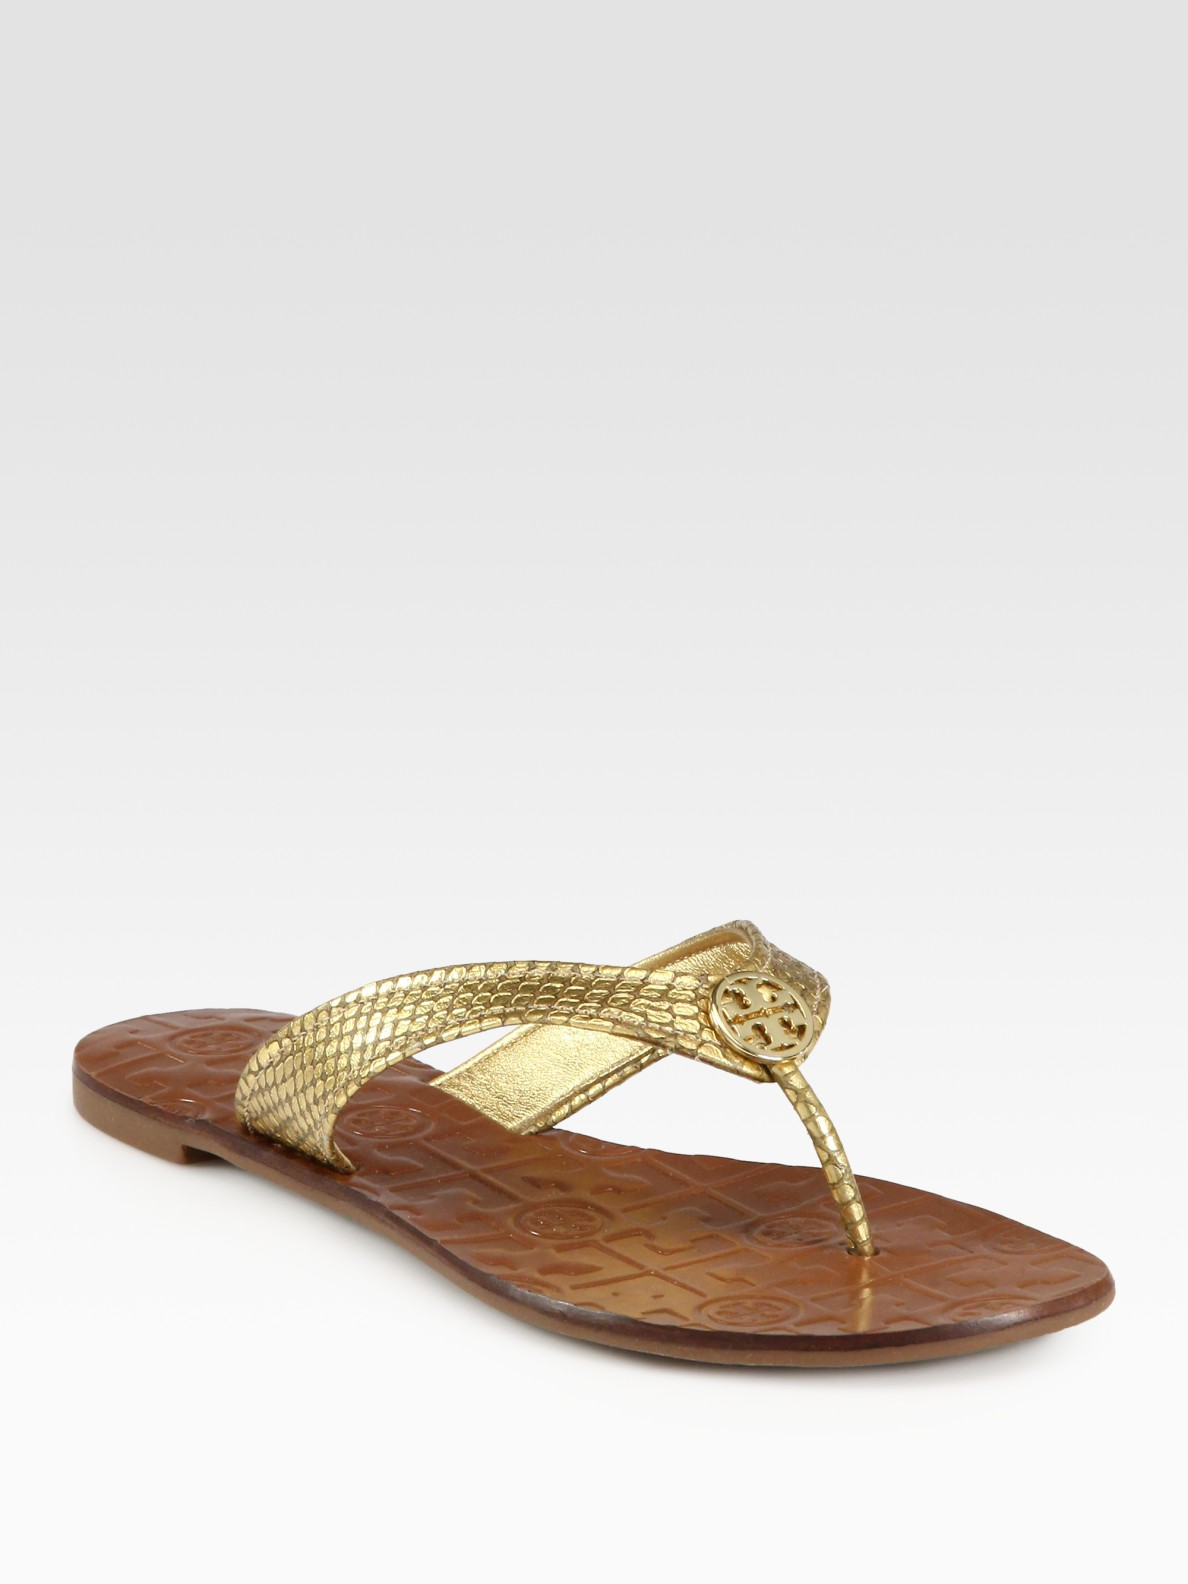 a6d596349e55e Lyst - Tory Burch Thora Metallic Snakeprint Leather Thong Sandals in ...